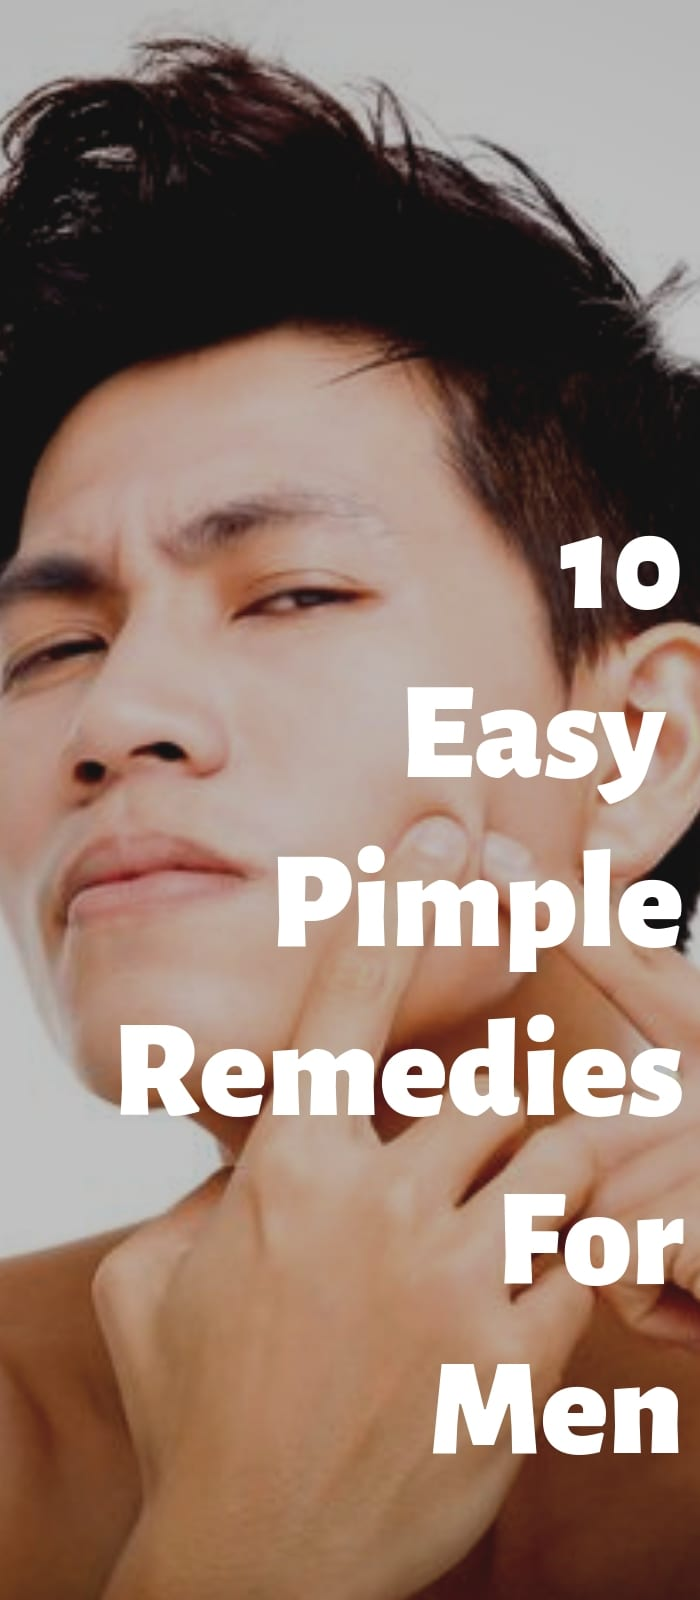 10 Easy Pimple Remedies For Men (1)